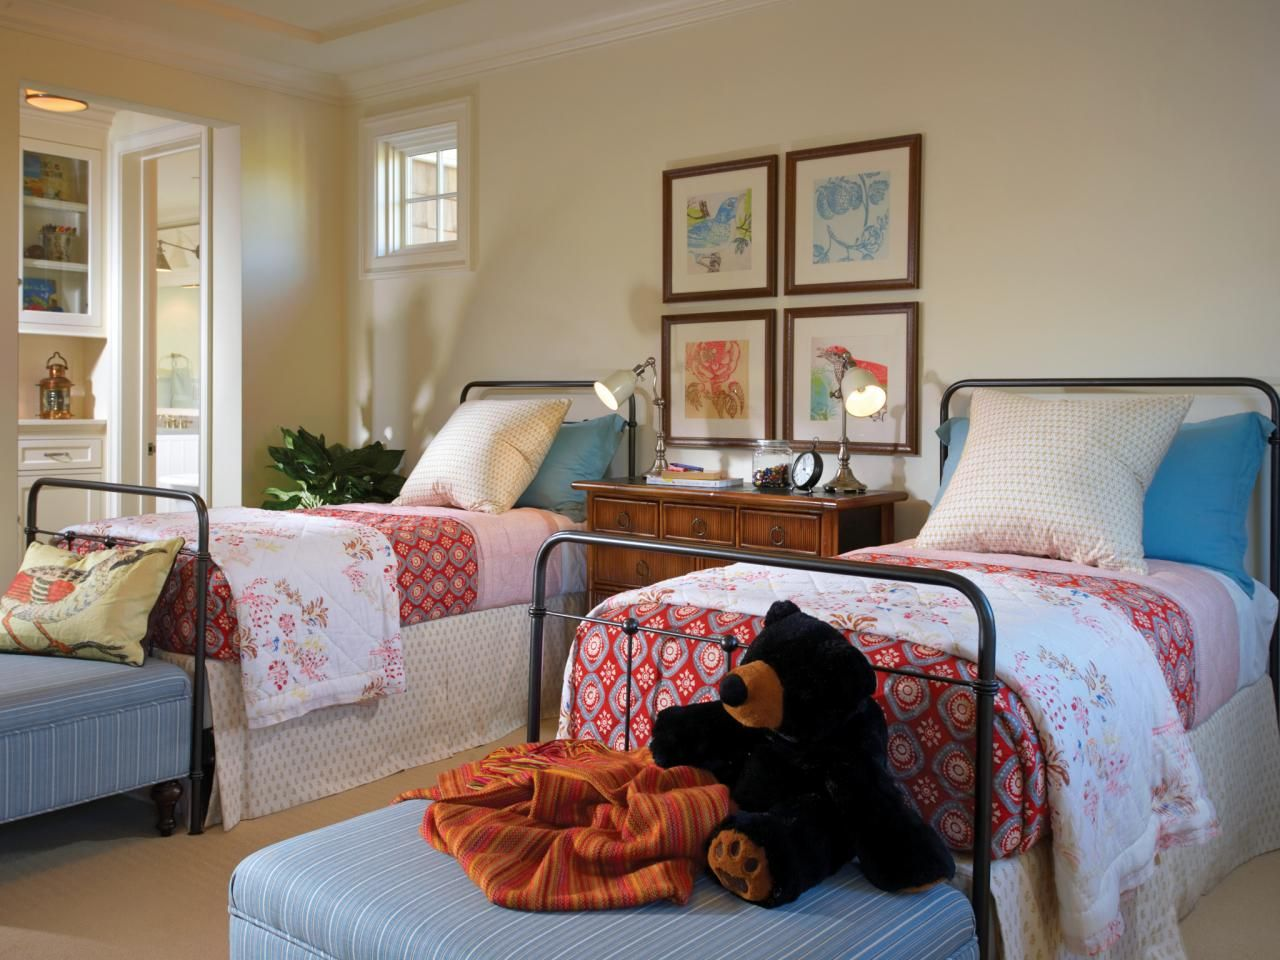 Young hinkle Bedroom Furniture Cape Cod. Young hinkle Bedroom Furniture Cape Cod   Home Design   Pinterest